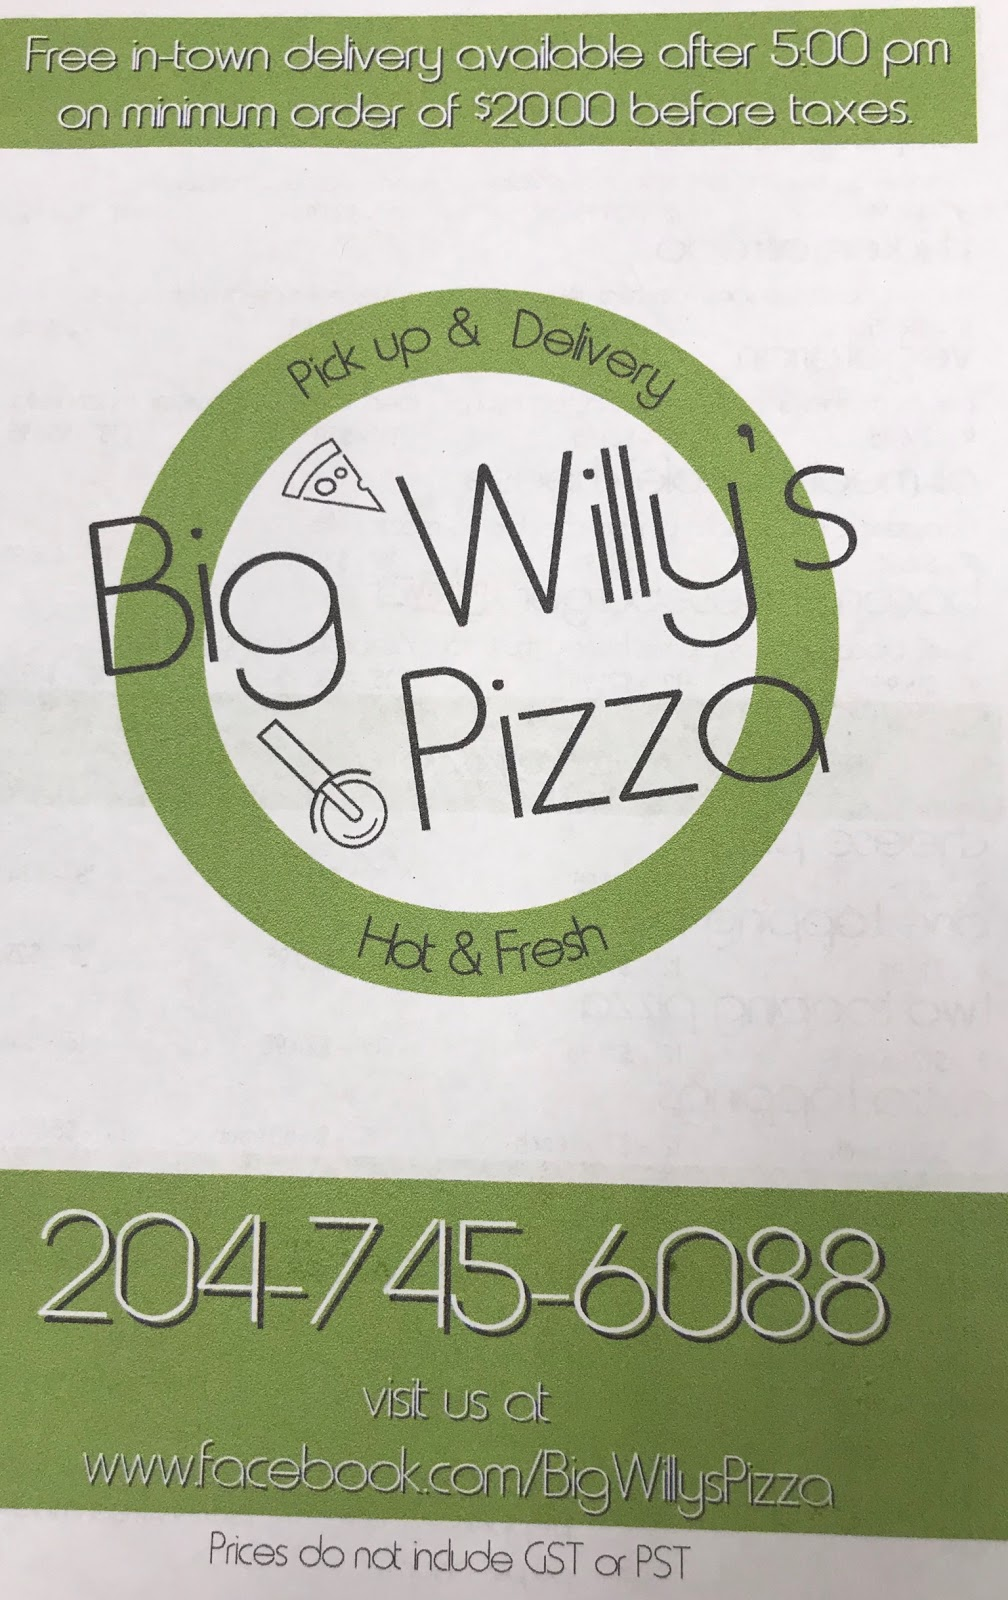 Big Willy's Pizza | restaurant | 2 4 Ave SE #82, Carman, MB R0G 0J0, Canada | 2047456088 OR +1 204-745-6088